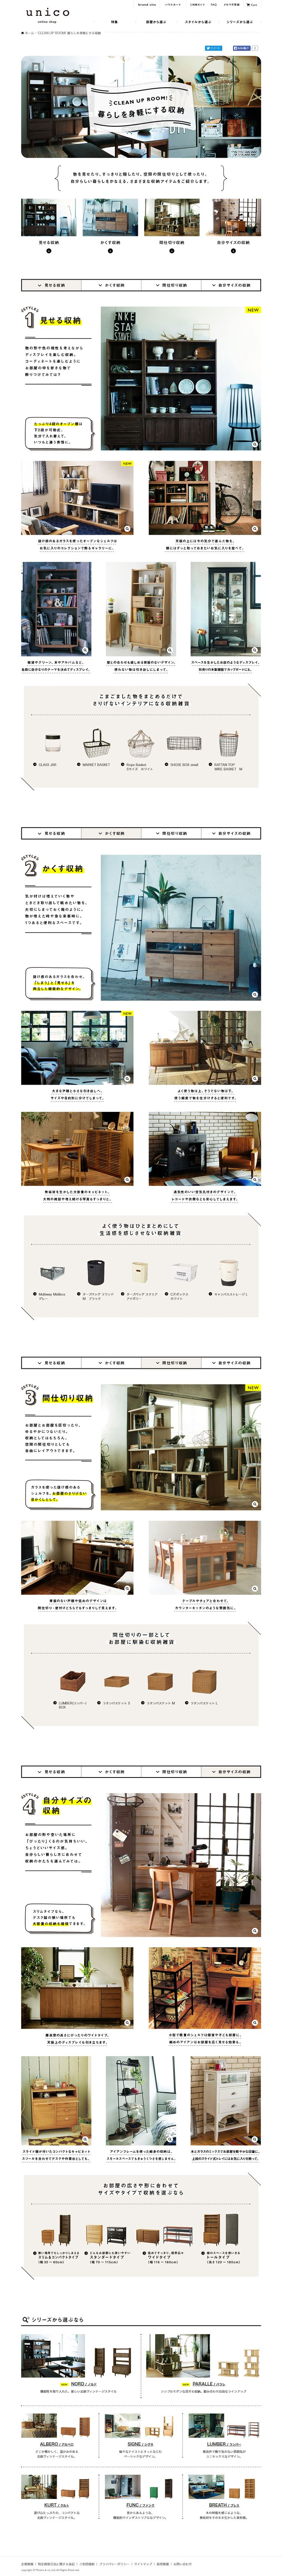 http://www.unico-fan.co.jp/feature/living_storage/index.html?s=f151127